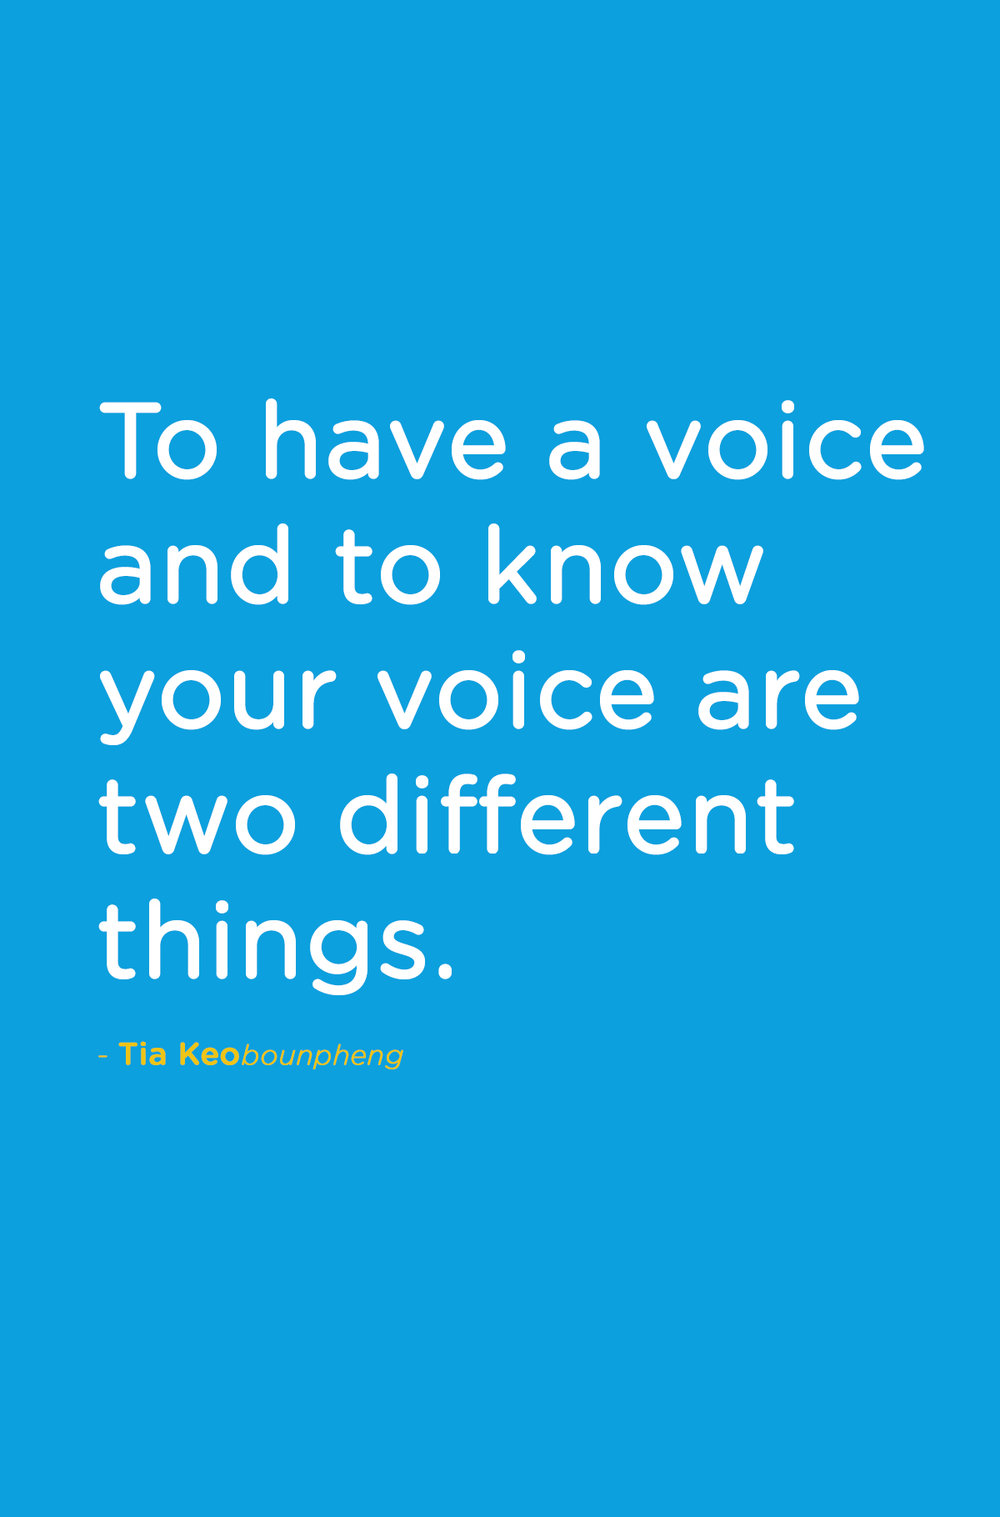 """To have a voice and to know your voice are two different things"" - Tia Keo"